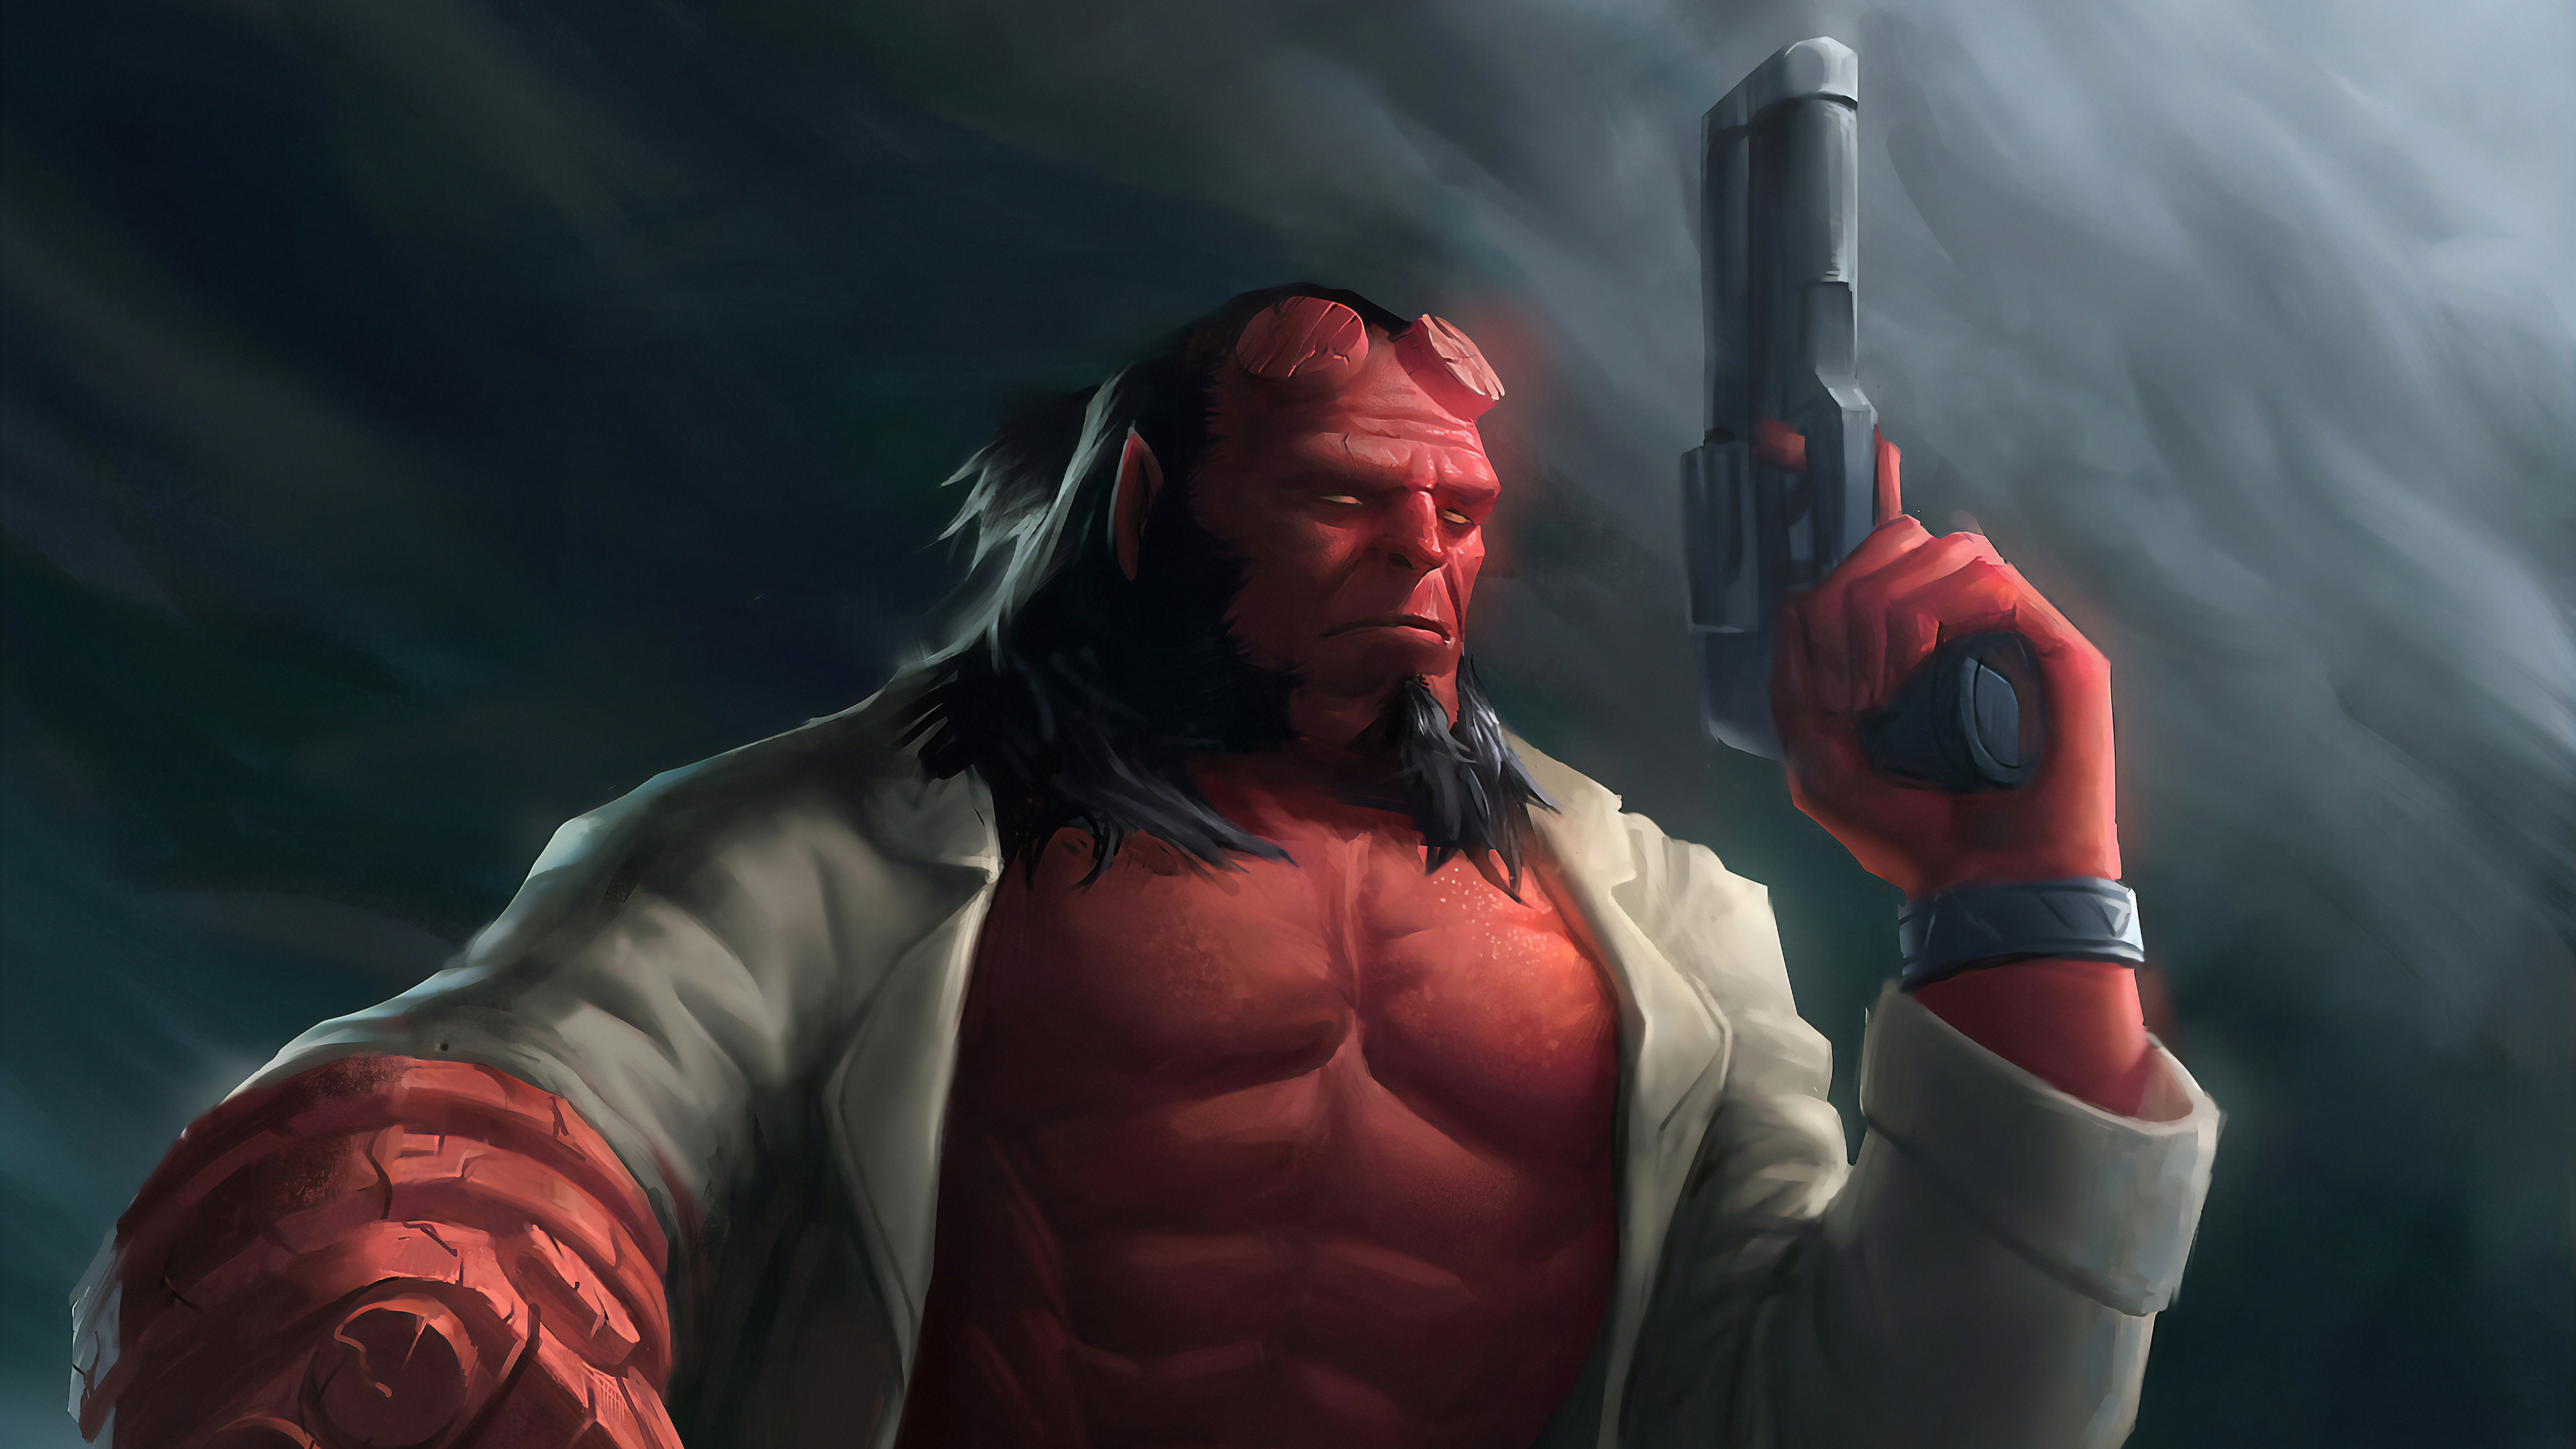 hellboy with gun 1562106131 - Hellboy With Gun - superheroes wallpapers, hellboy wallpapers, hd-wallpapers, digital art wallpapers, artwork wallpapers, art wallpapers, 4k-wallpapers